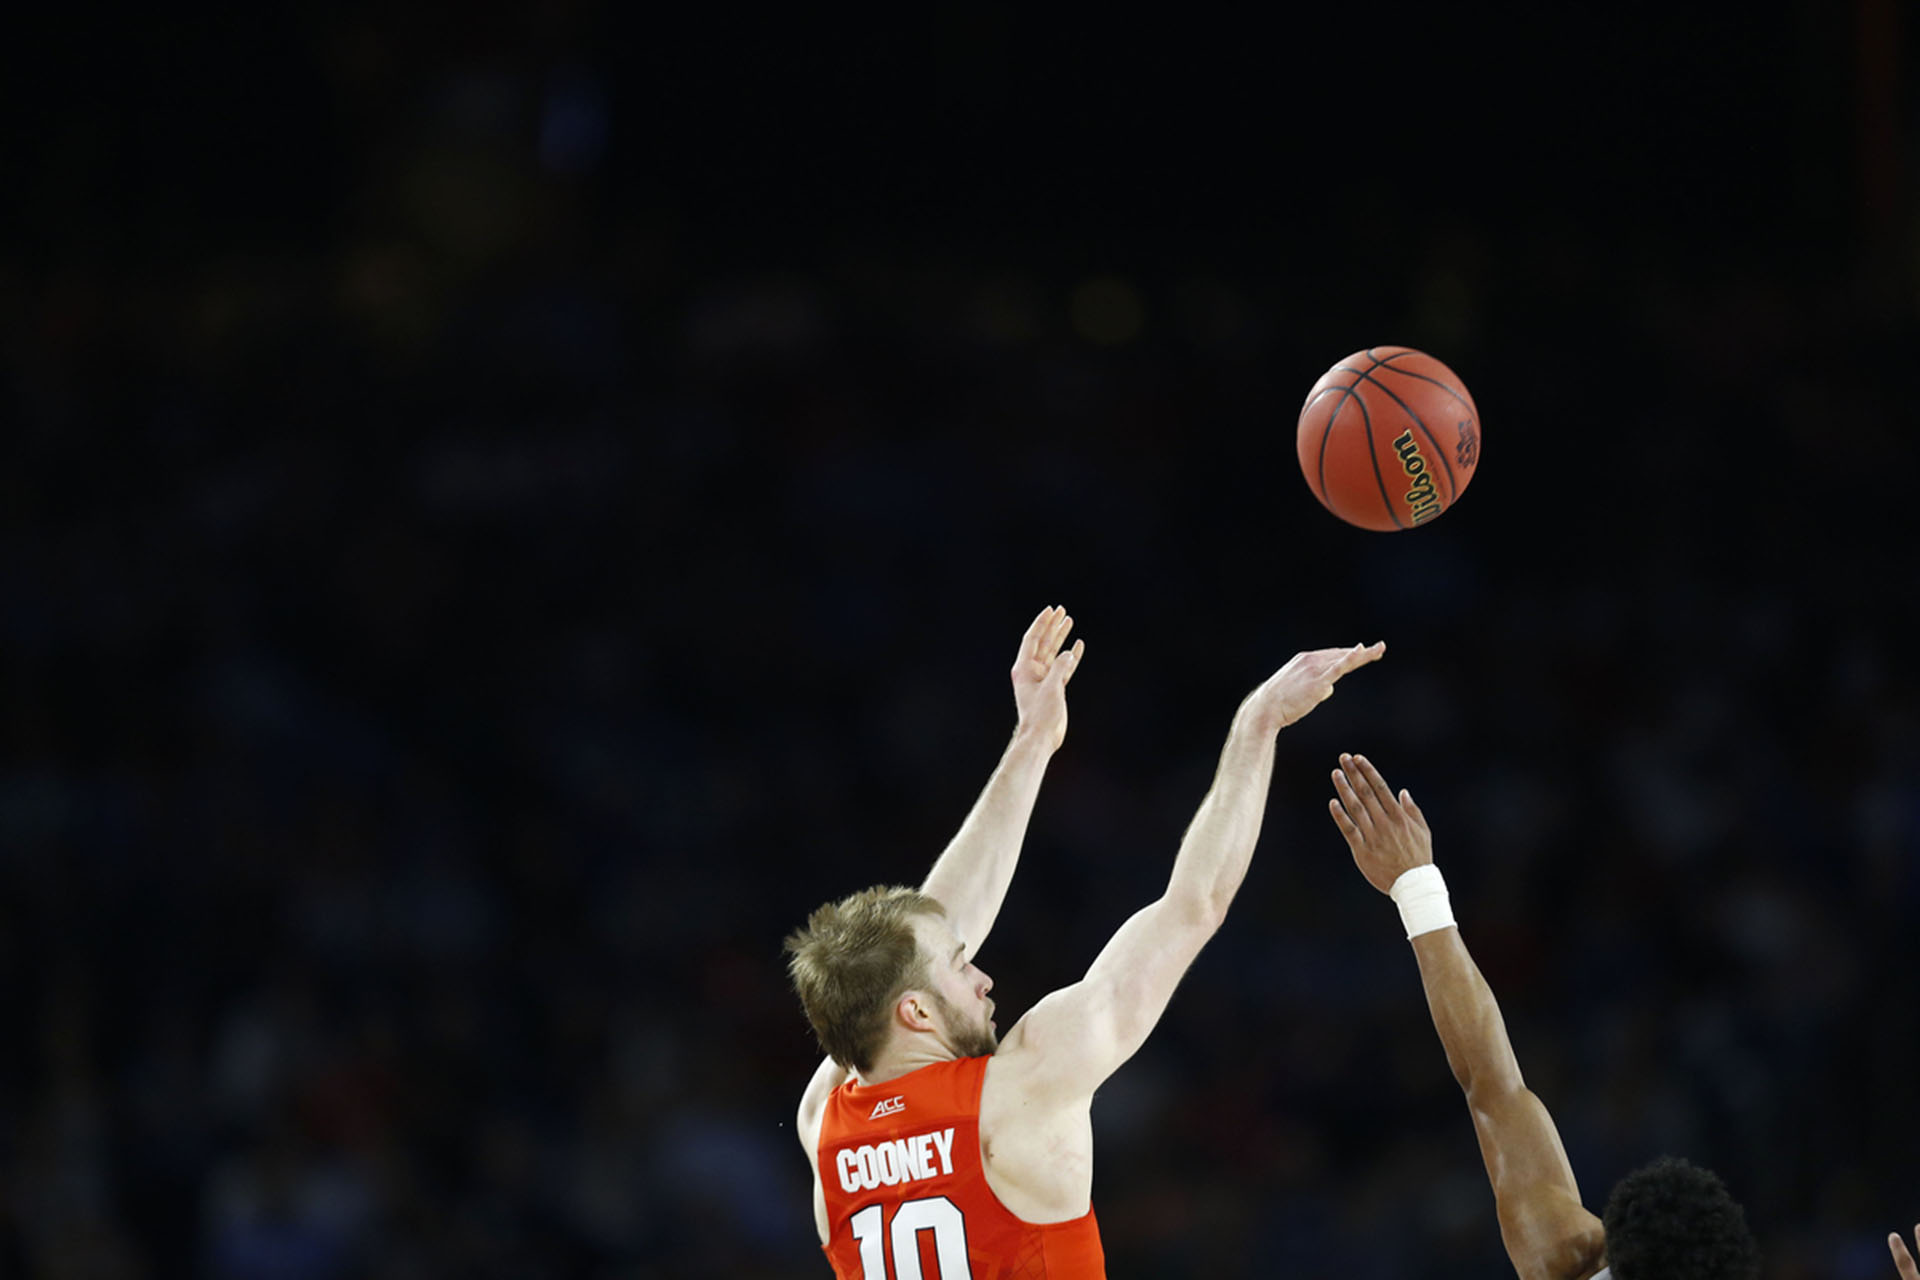 Trevor Cooney shoots a three as Syracuse takes on North Carolina on April 2, 2016 at the at NRG Stadium in Houston, Tx. (Photo by Jed Jacobsohn for the Players' Tribune)